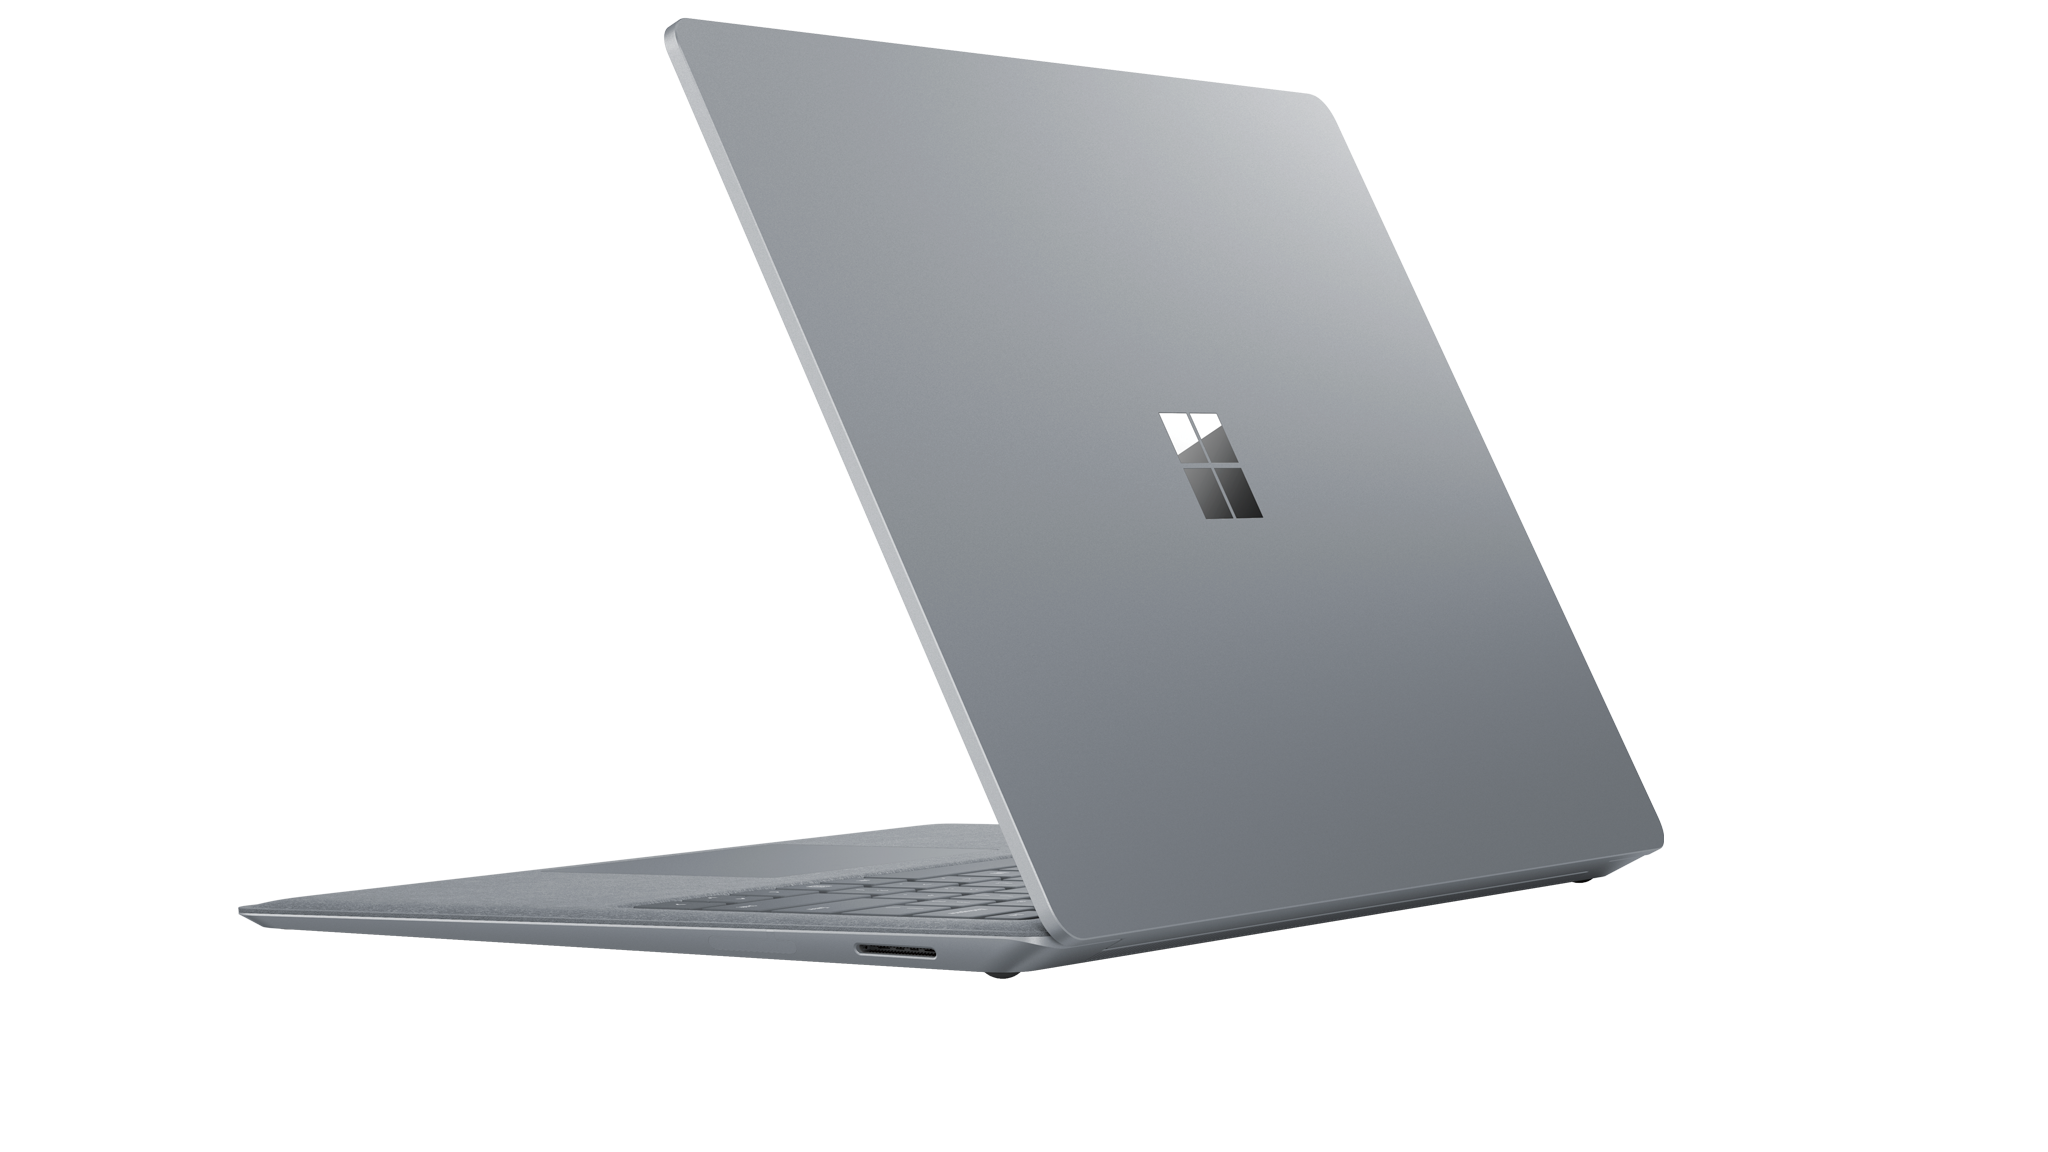 Surface Laptop 2 측면 보기